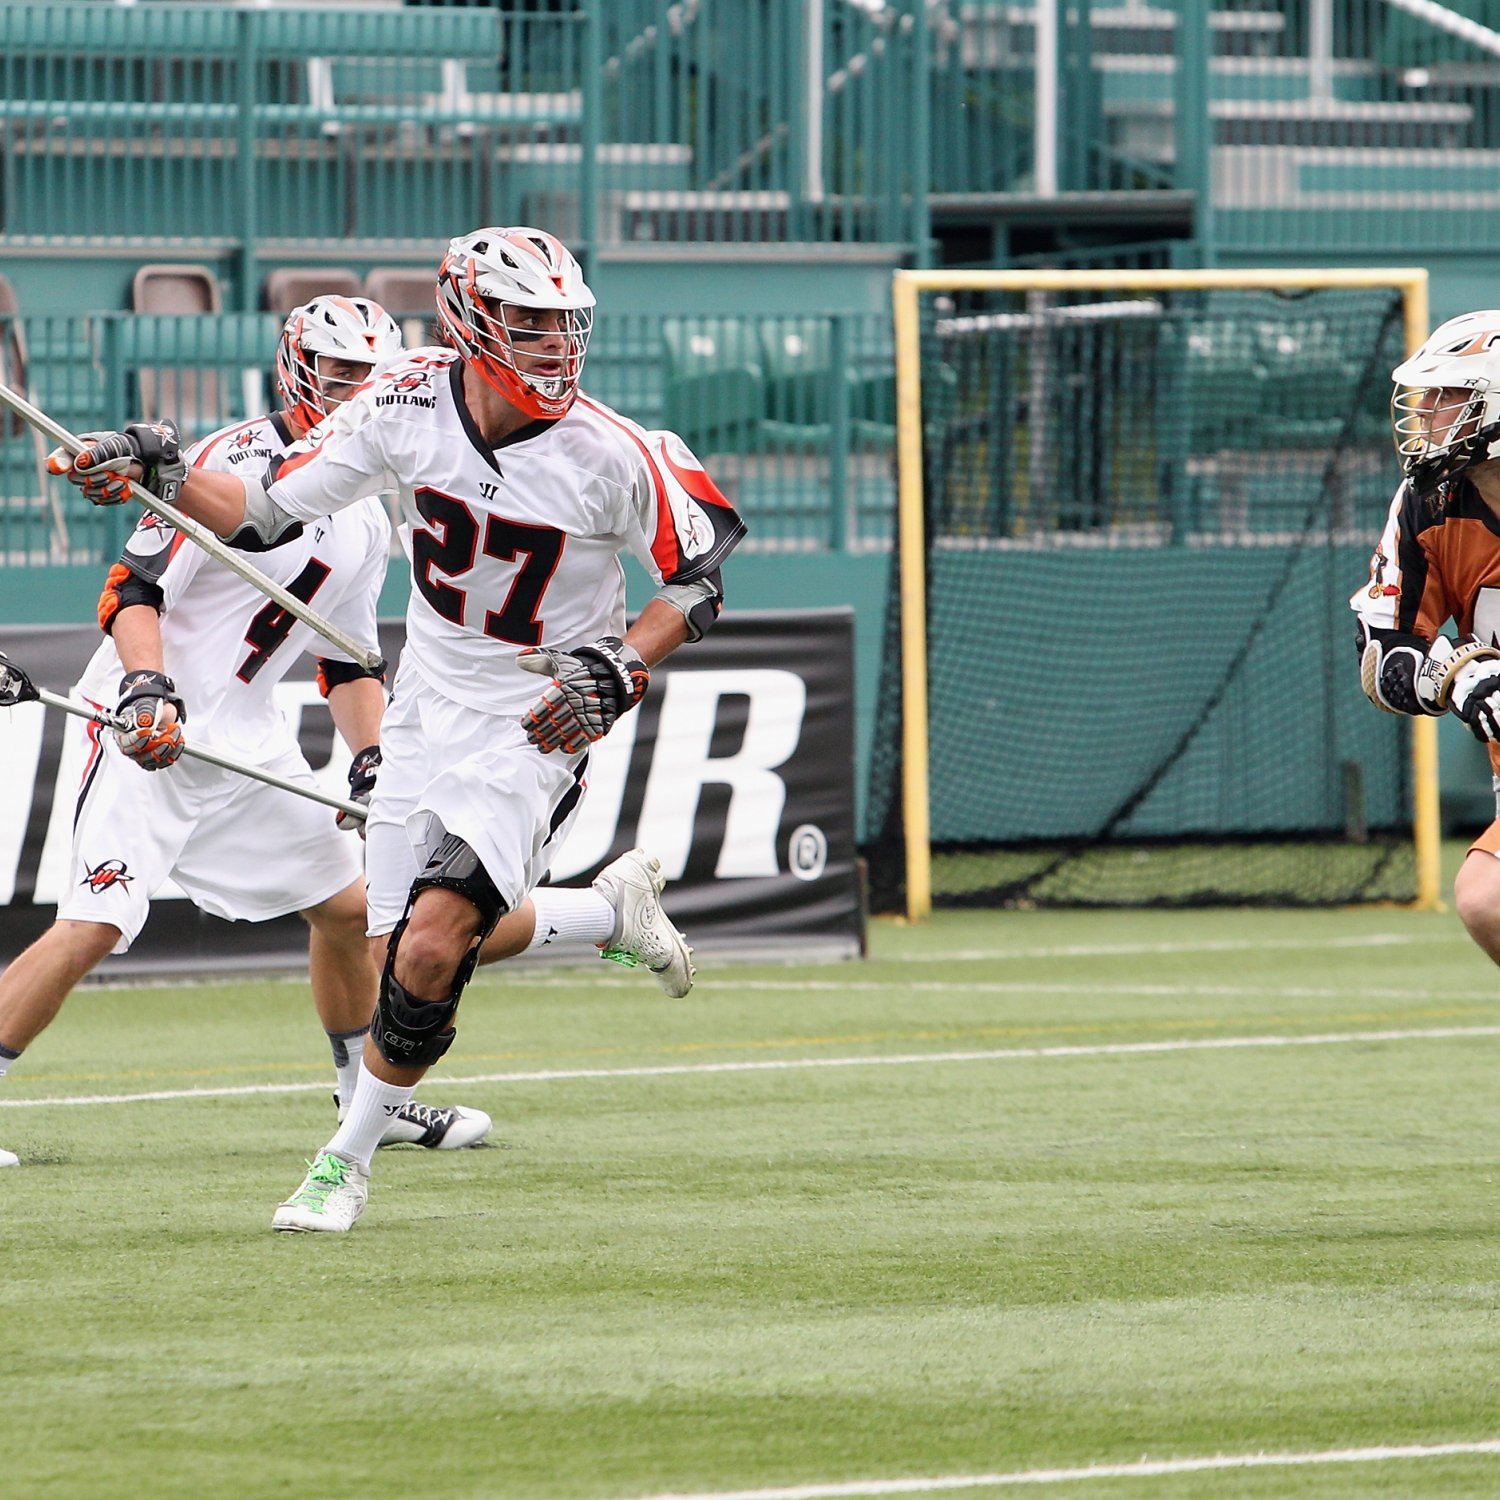 MLL Championship 2014: Date, Start Time And Outlaws Vs